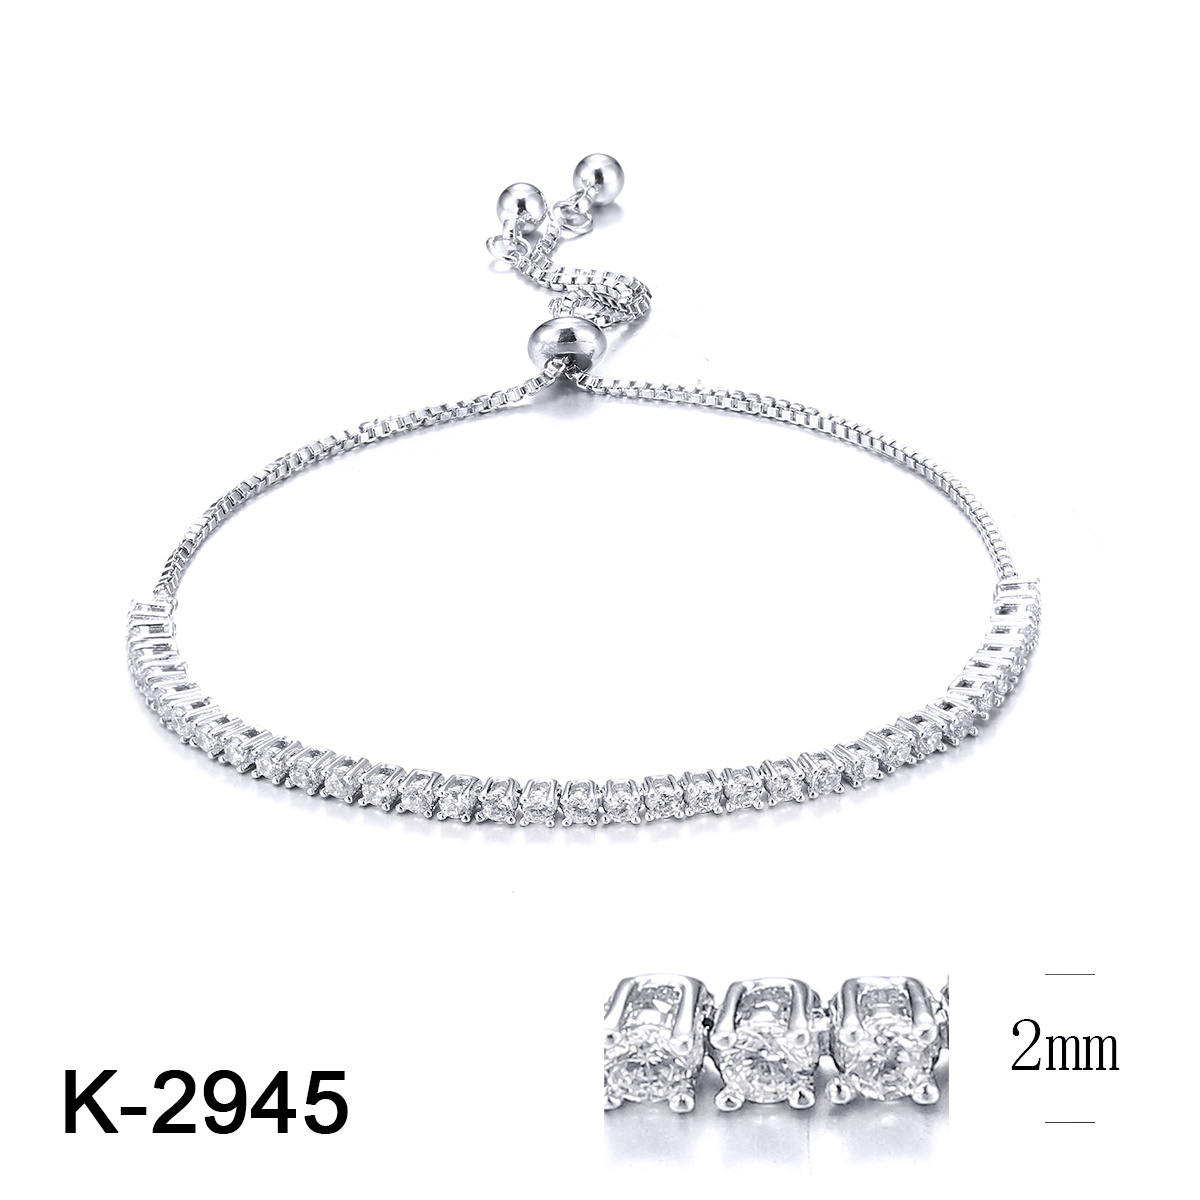 Wholesale Silver Fashion Jewelry CZ Diamond Tennis Bracelet for Women pictures & photos